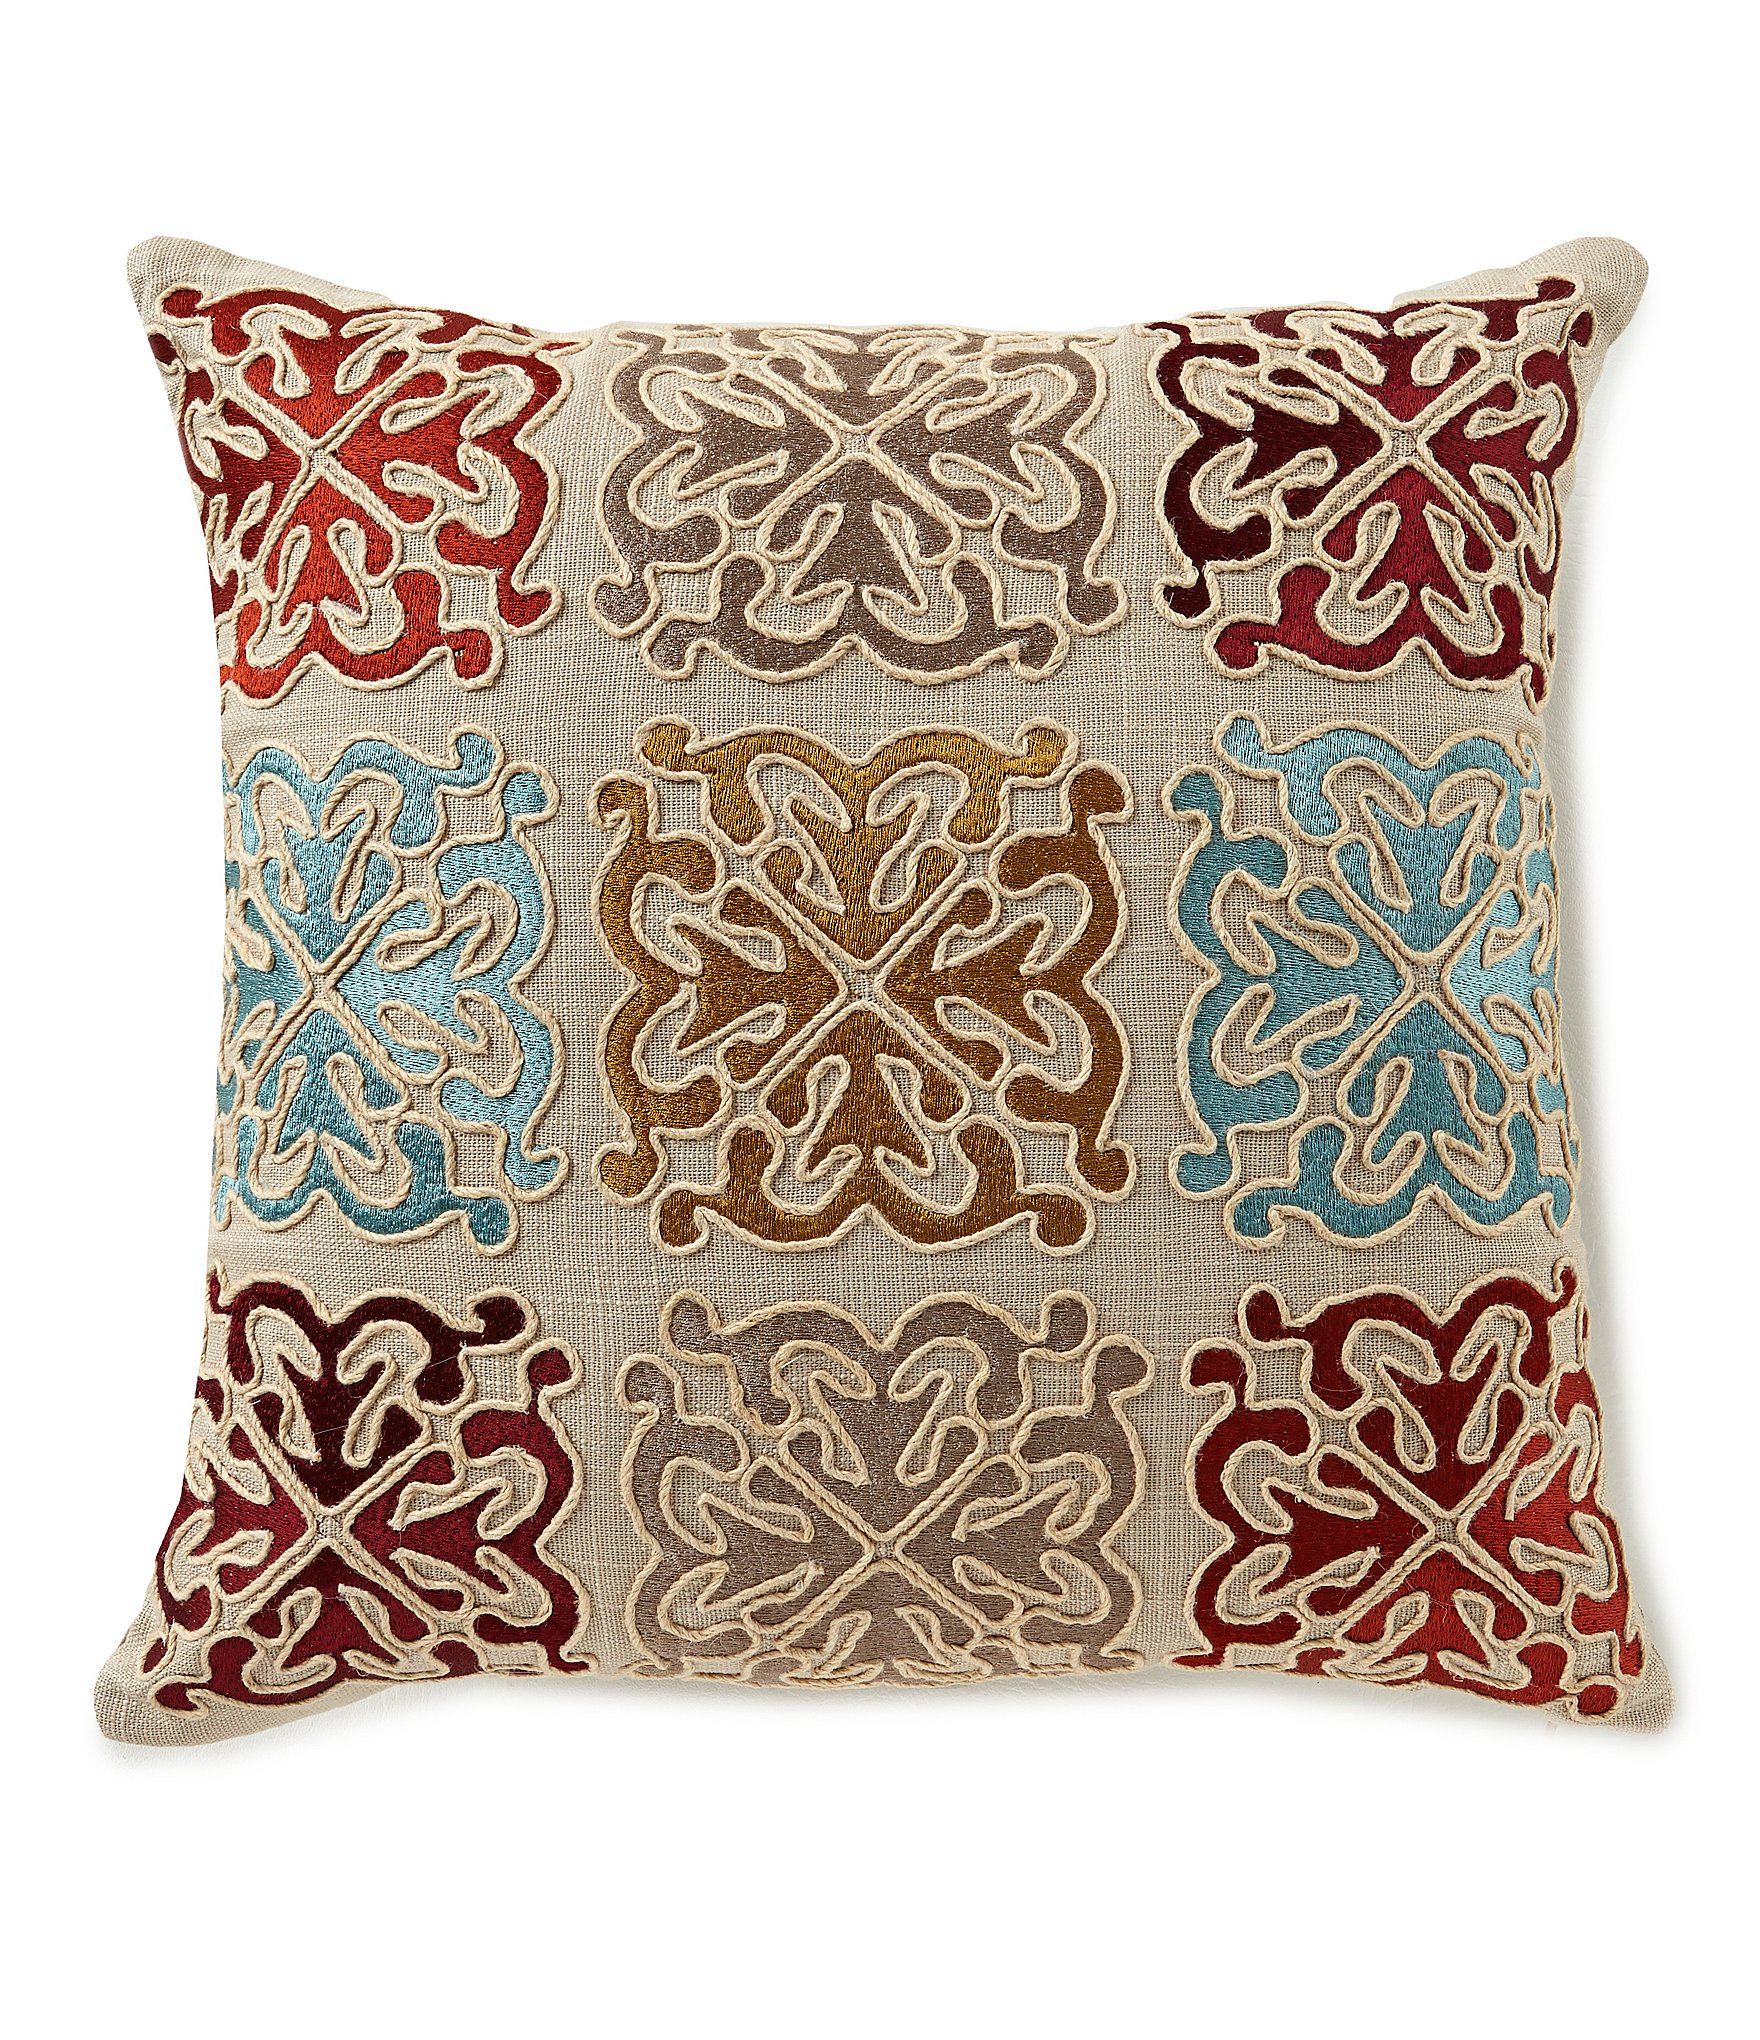 Nicole Miller Home Decorative Pillow Made In India